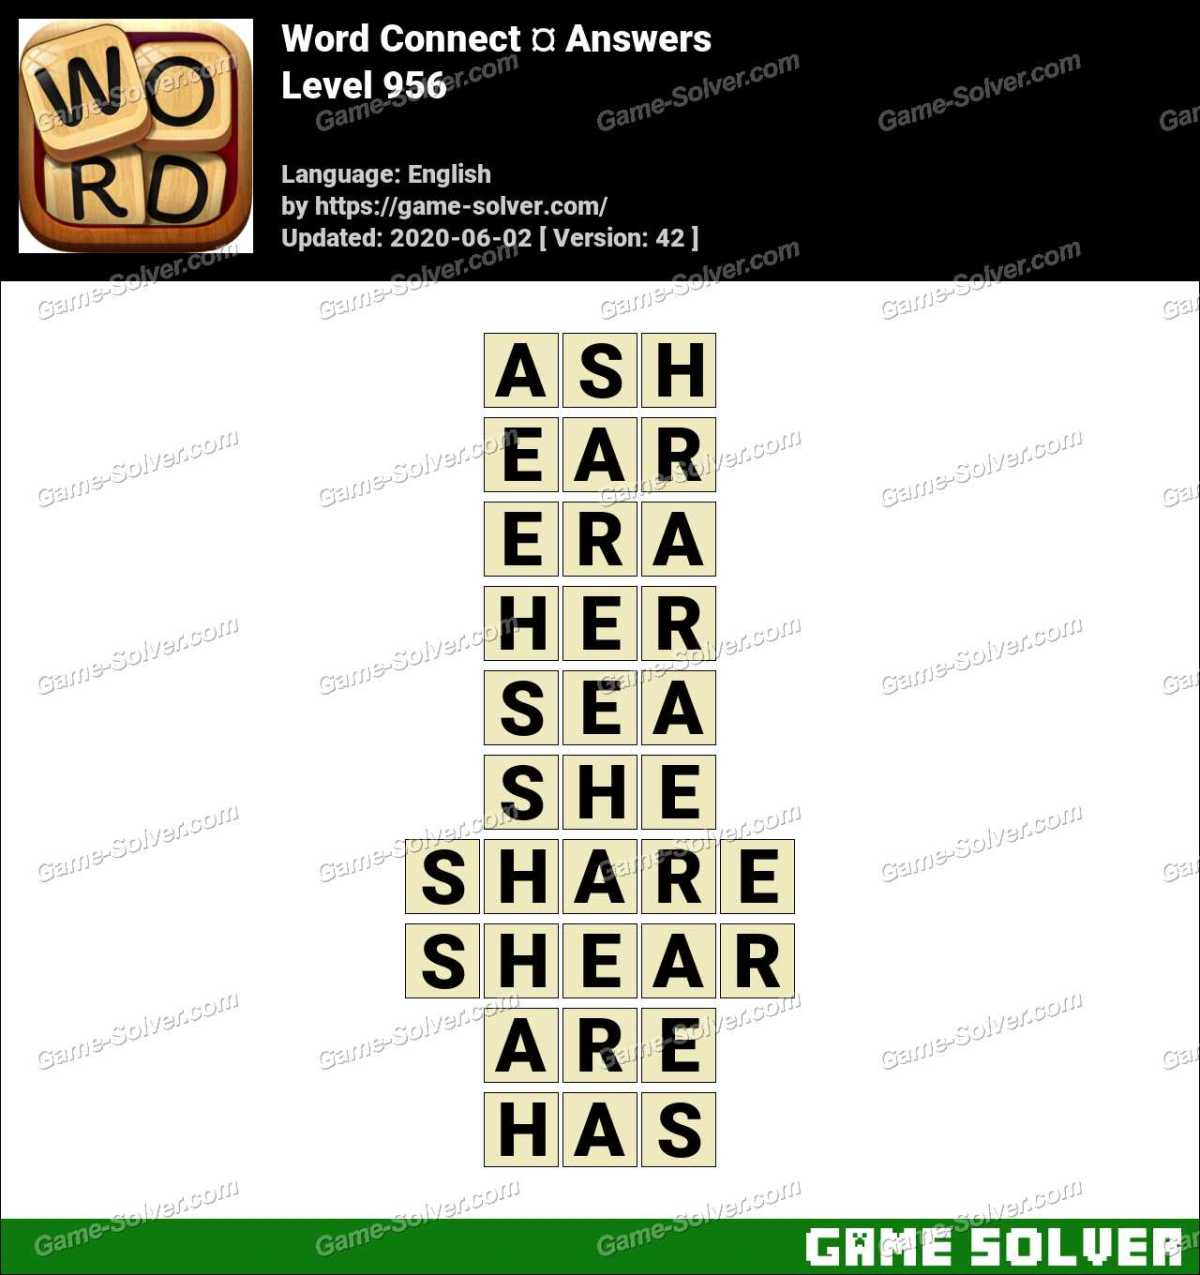 Word Connect Level 956 Answers